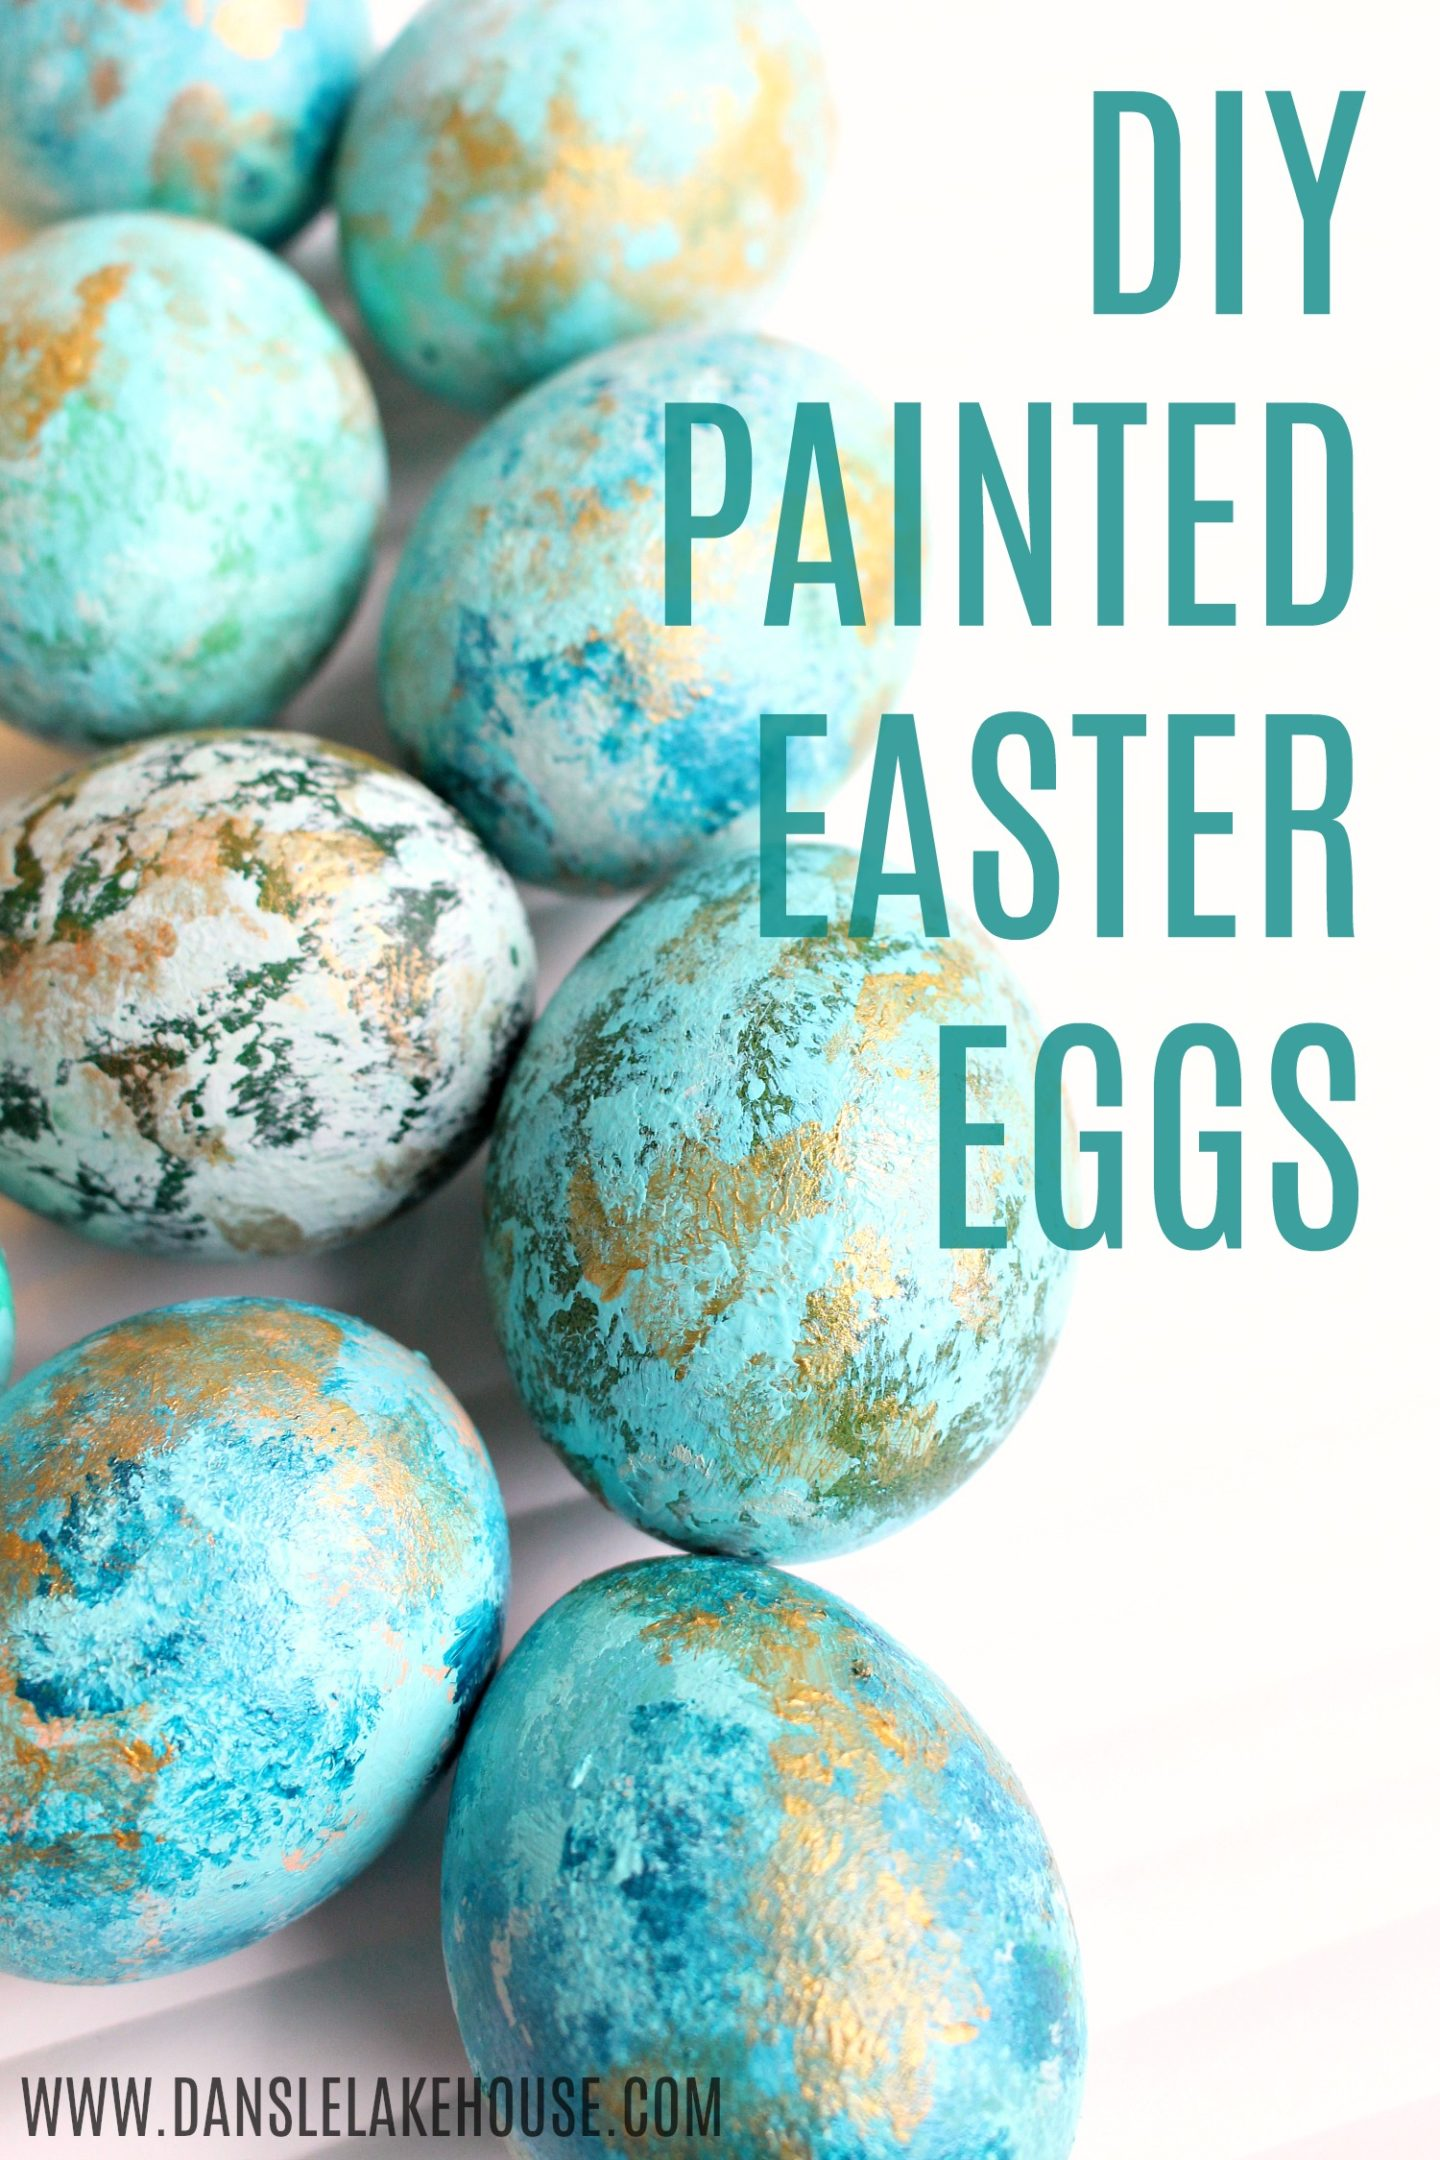 DIY Painted Easter Eggs